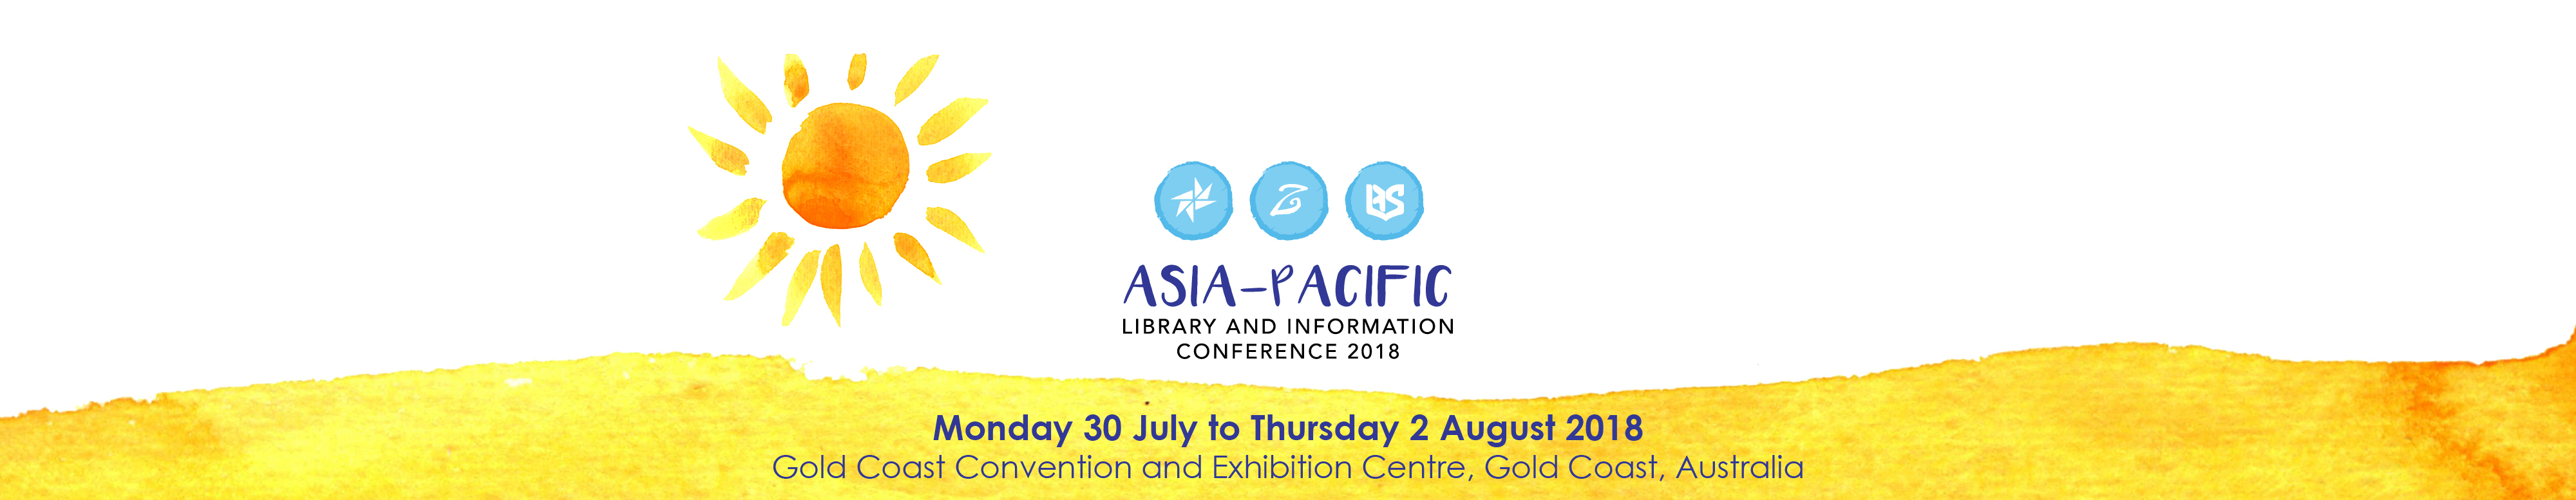 Asia-Pacific Library and Information Conference 2018